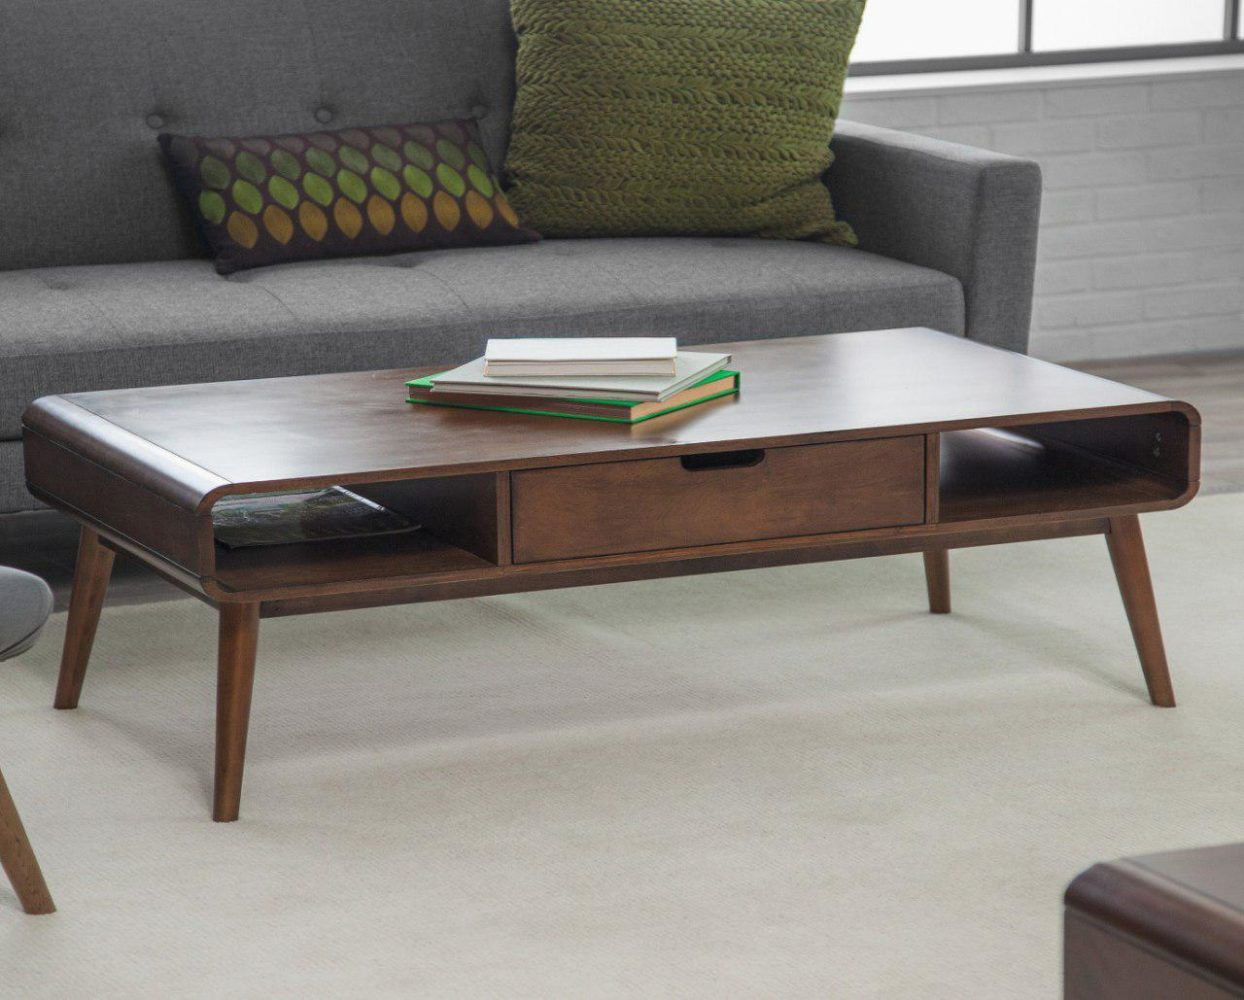 Wooden coffee table with books and sofa - Taskmasters Dubai